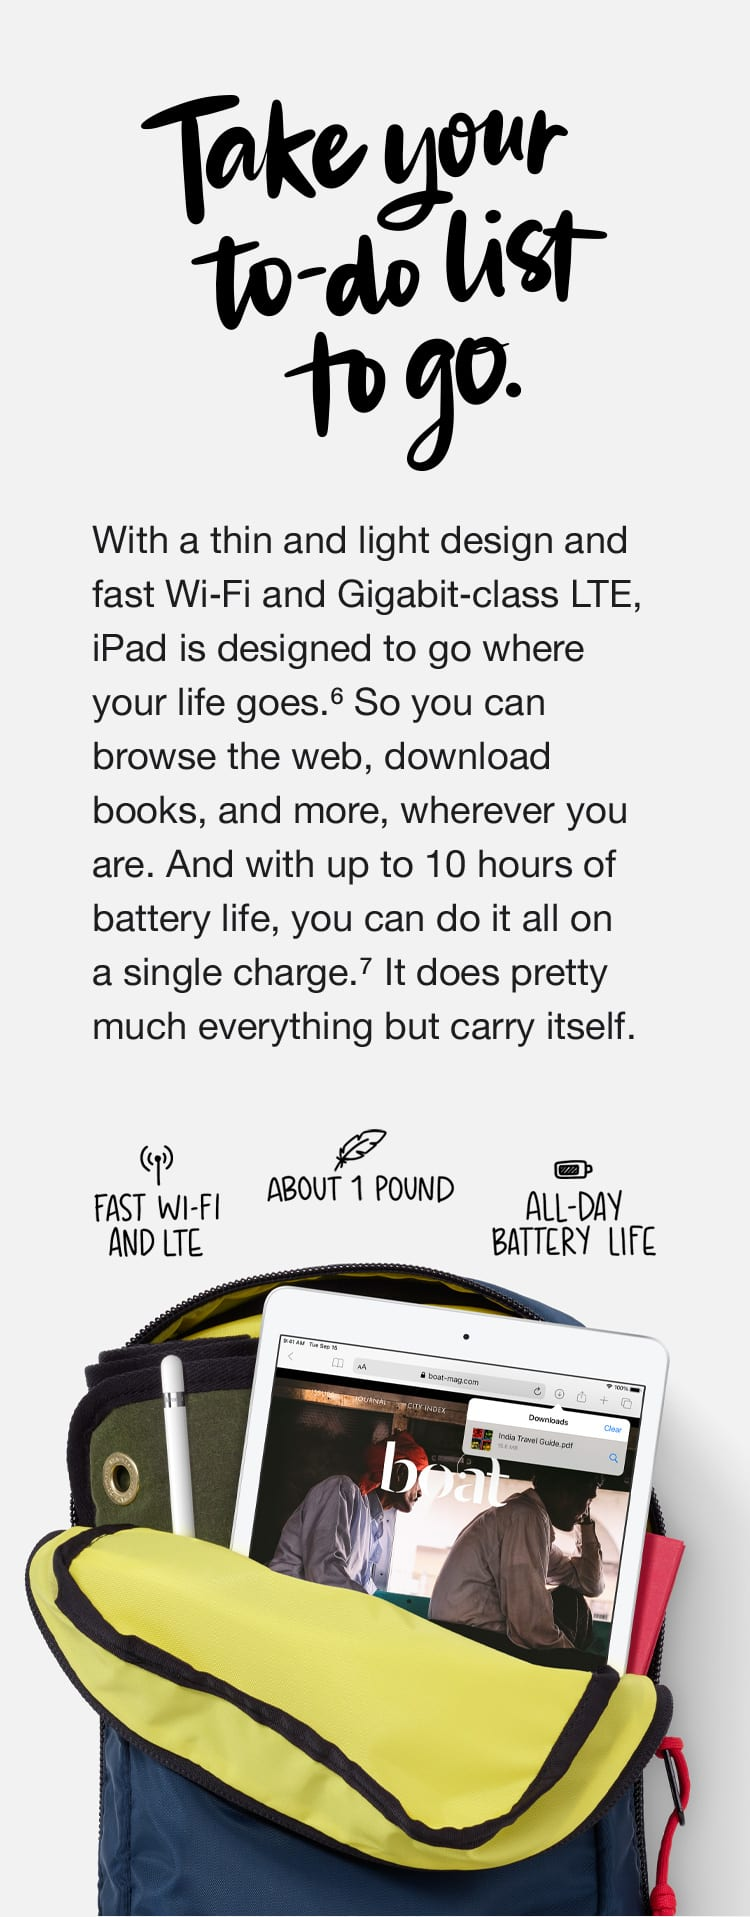 Take your to-do list to go. With a thin and light design and fast Wi-Fi and Gigabit-class LTE, iPad is designed to go where your life goes.(6) So you can browse the web, download books, and more, wherever you are. And with up to 10 hours of battery life, you can do it all on a single charge.(7) It does pretty much everything but carry itself.